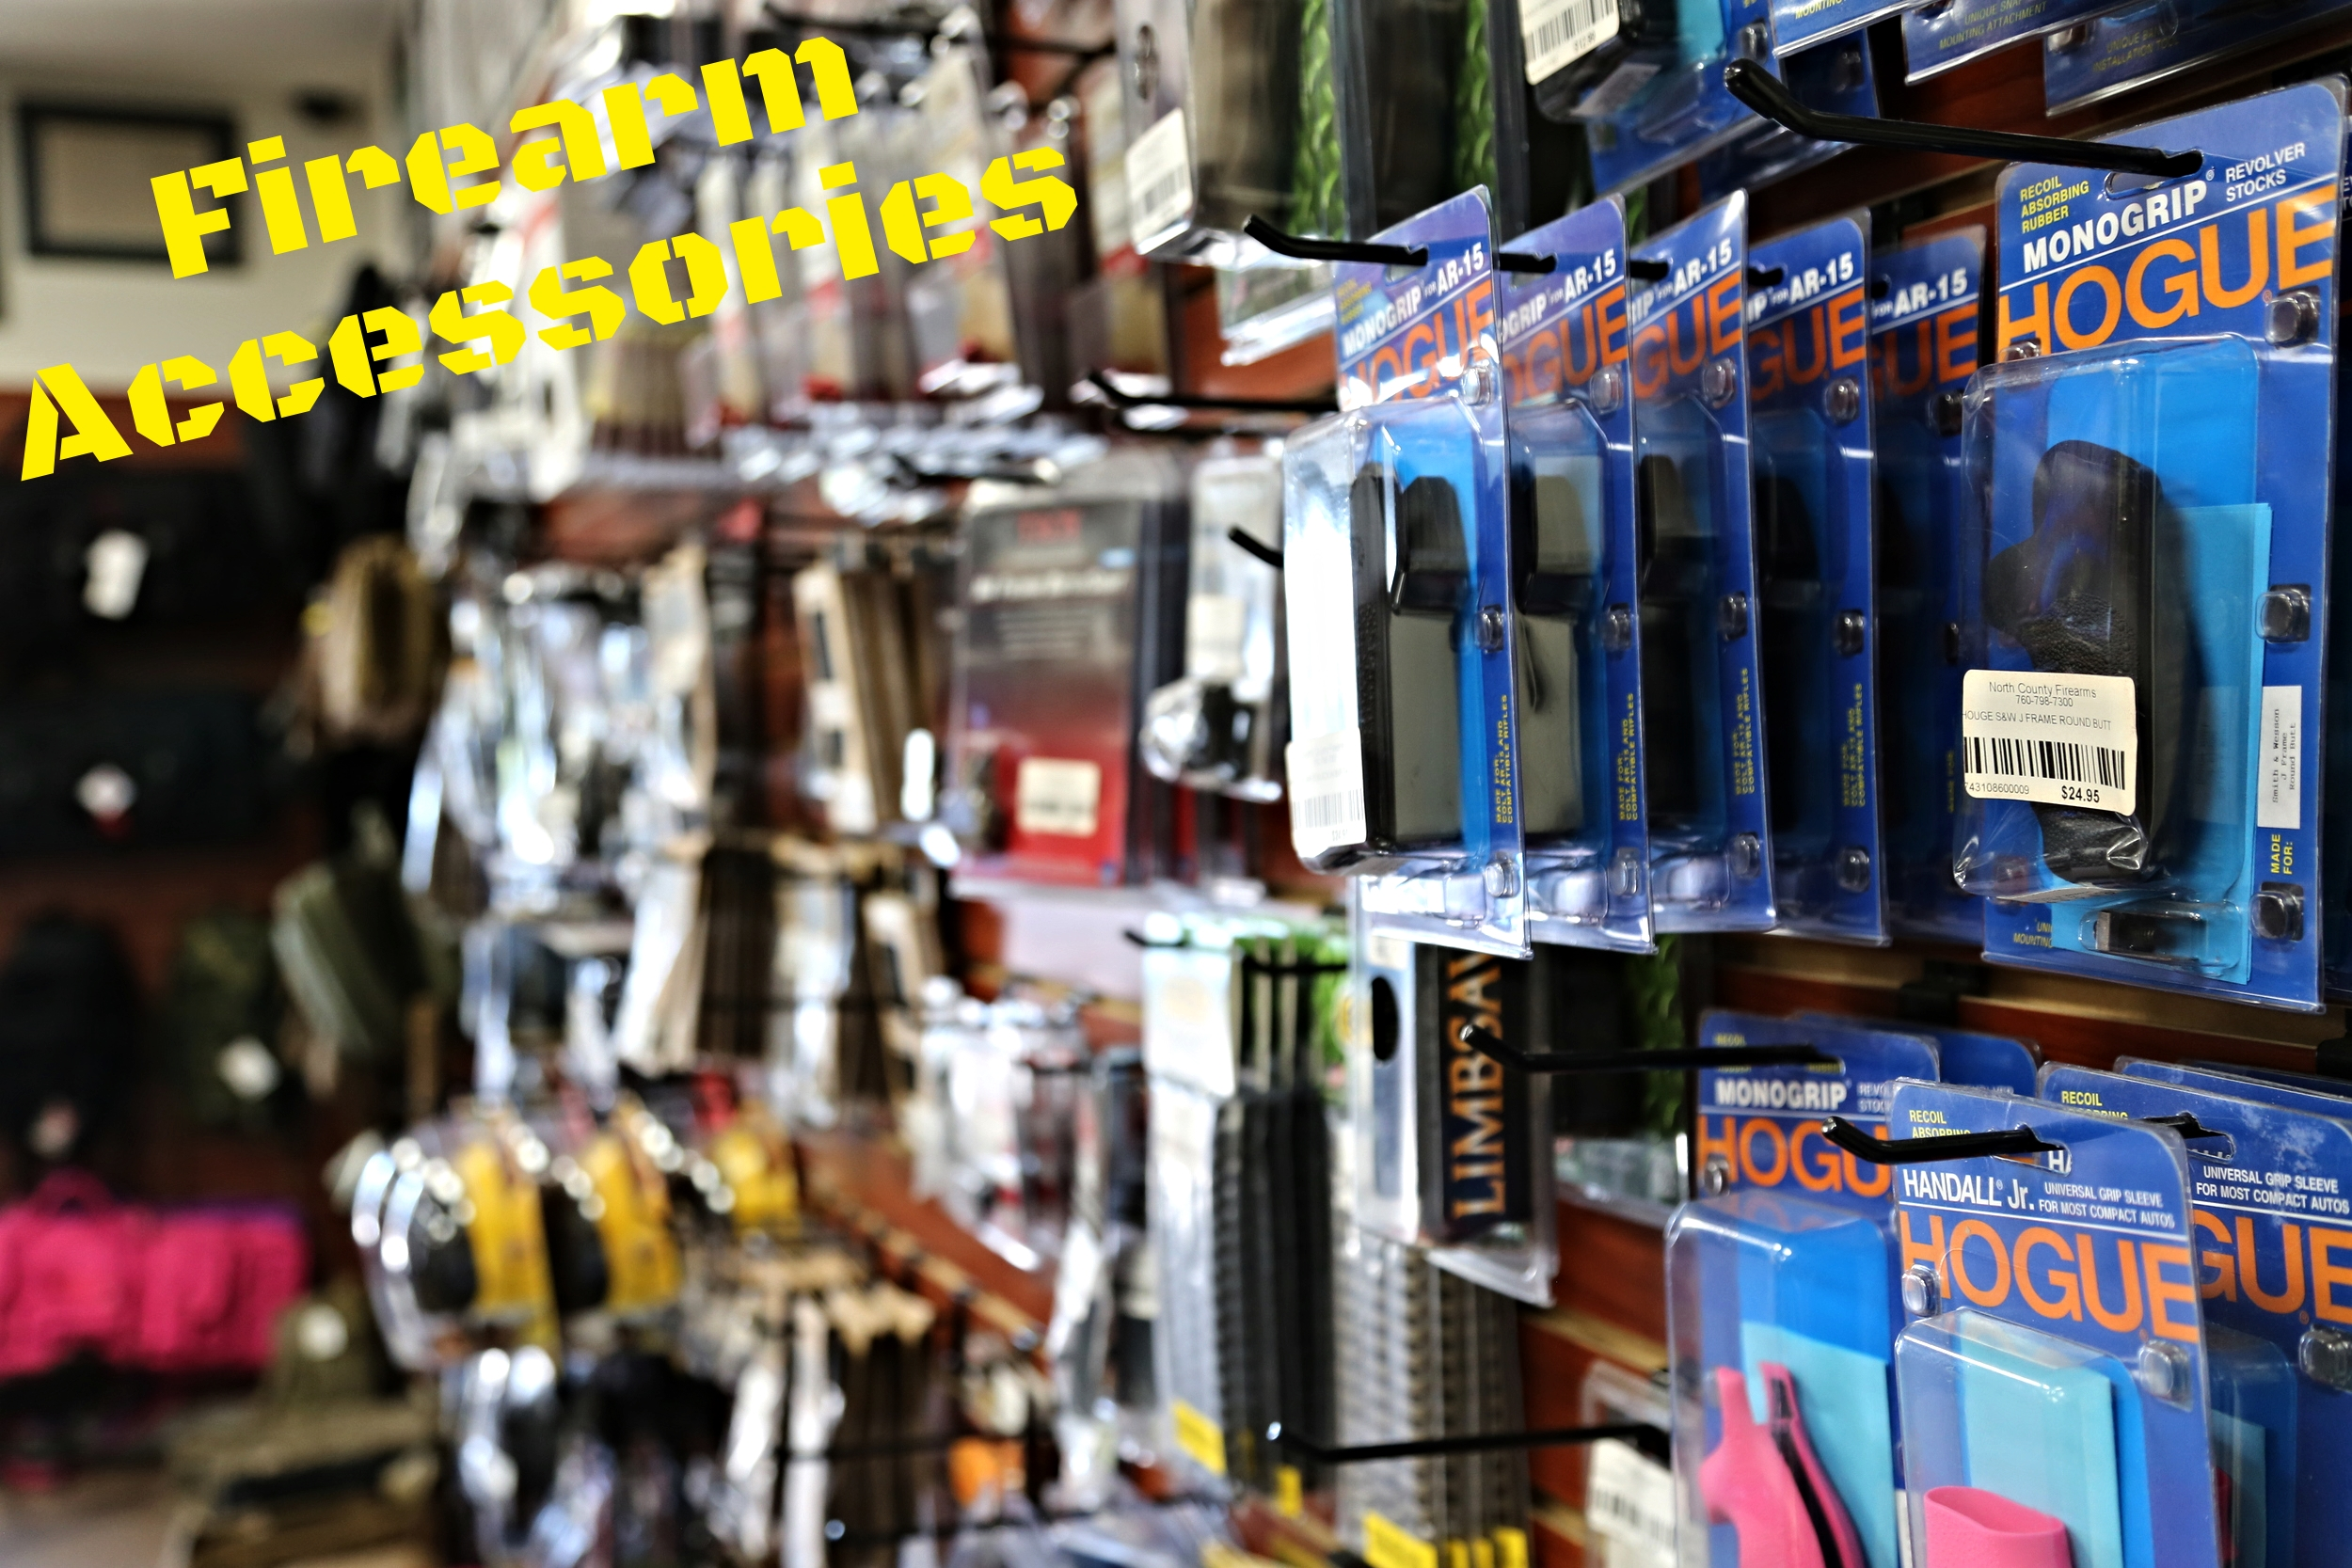 North County Firearms is always a stellar choice when looking for firearm accessories.  Everything from grips to sights, we got you covered!  We carry a lot of products by manufactures such as: -Tapco -CMMG -Magpul -Hogue -Troy -Sig Sauer -Uncle Mike's   -Harris -Ergo Grip -Smith's -Butler Creek -Carlson's -TacStar -SureFire -Howard Leight -Geissele   -Noveske -BCM -Lantac -Strike Industries -Remington  and many more!